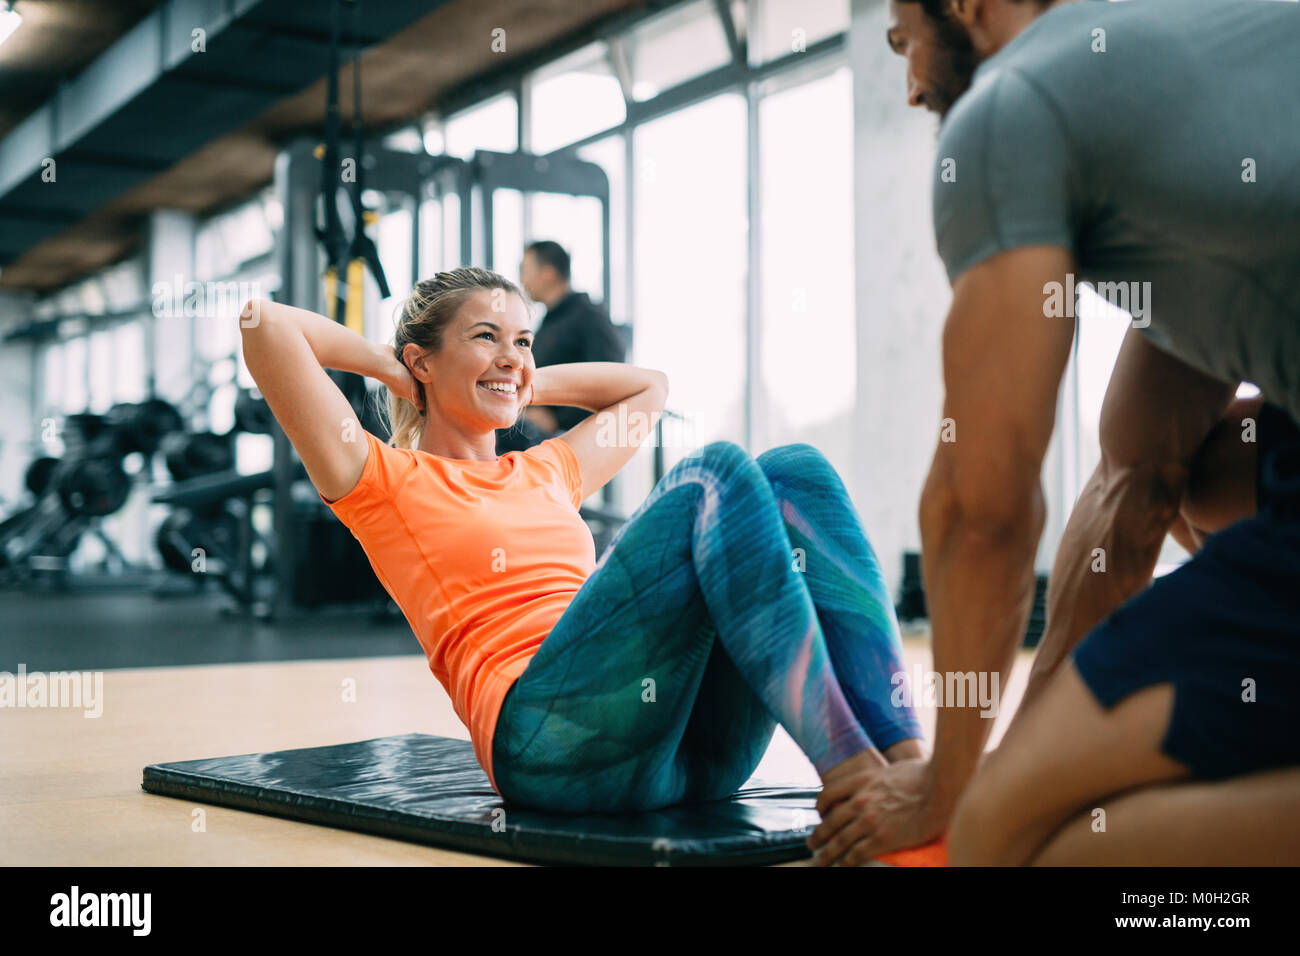 Personal trainer assisting woman lose weight - Stock Image